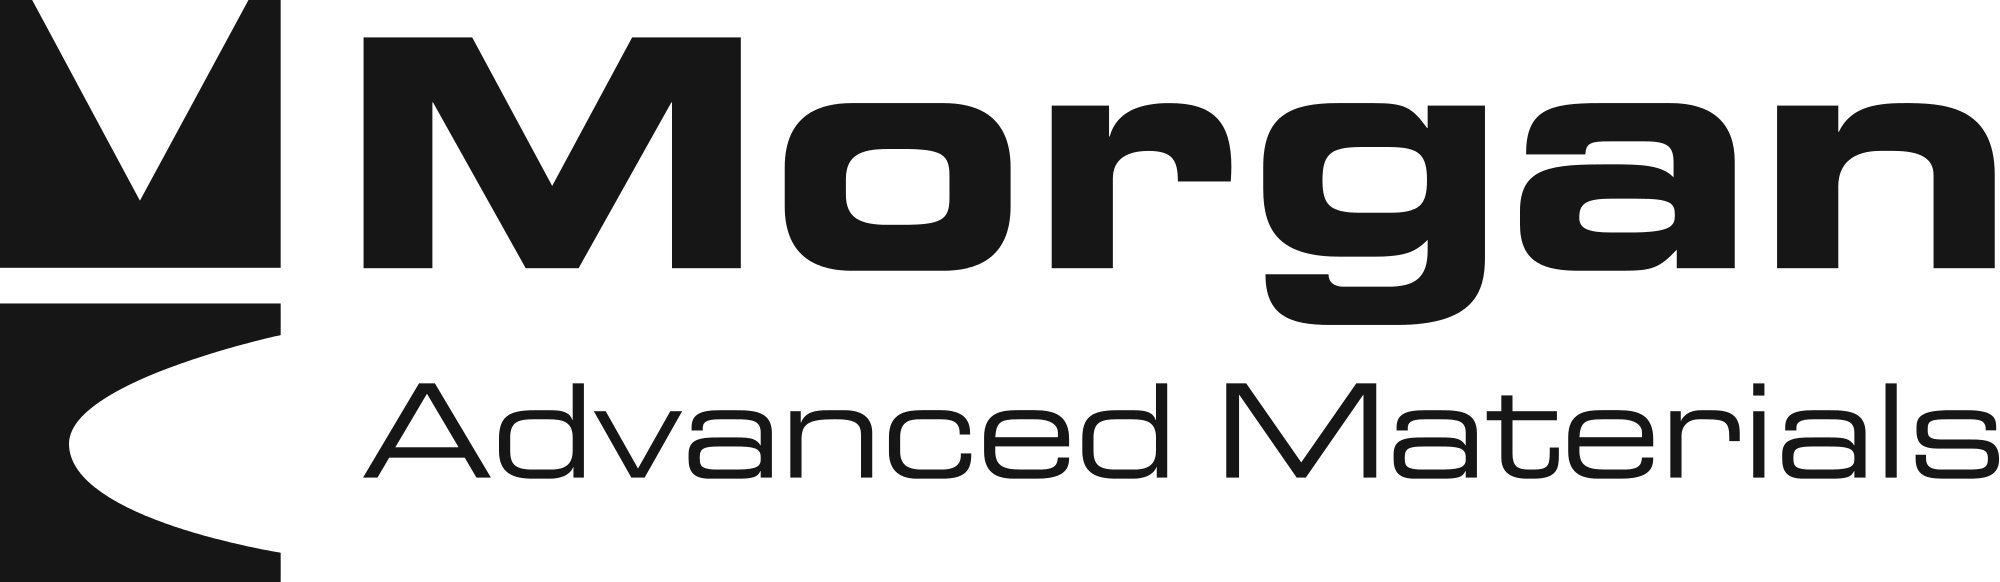 Morgan Advanced Materials - Molten Metal Systems